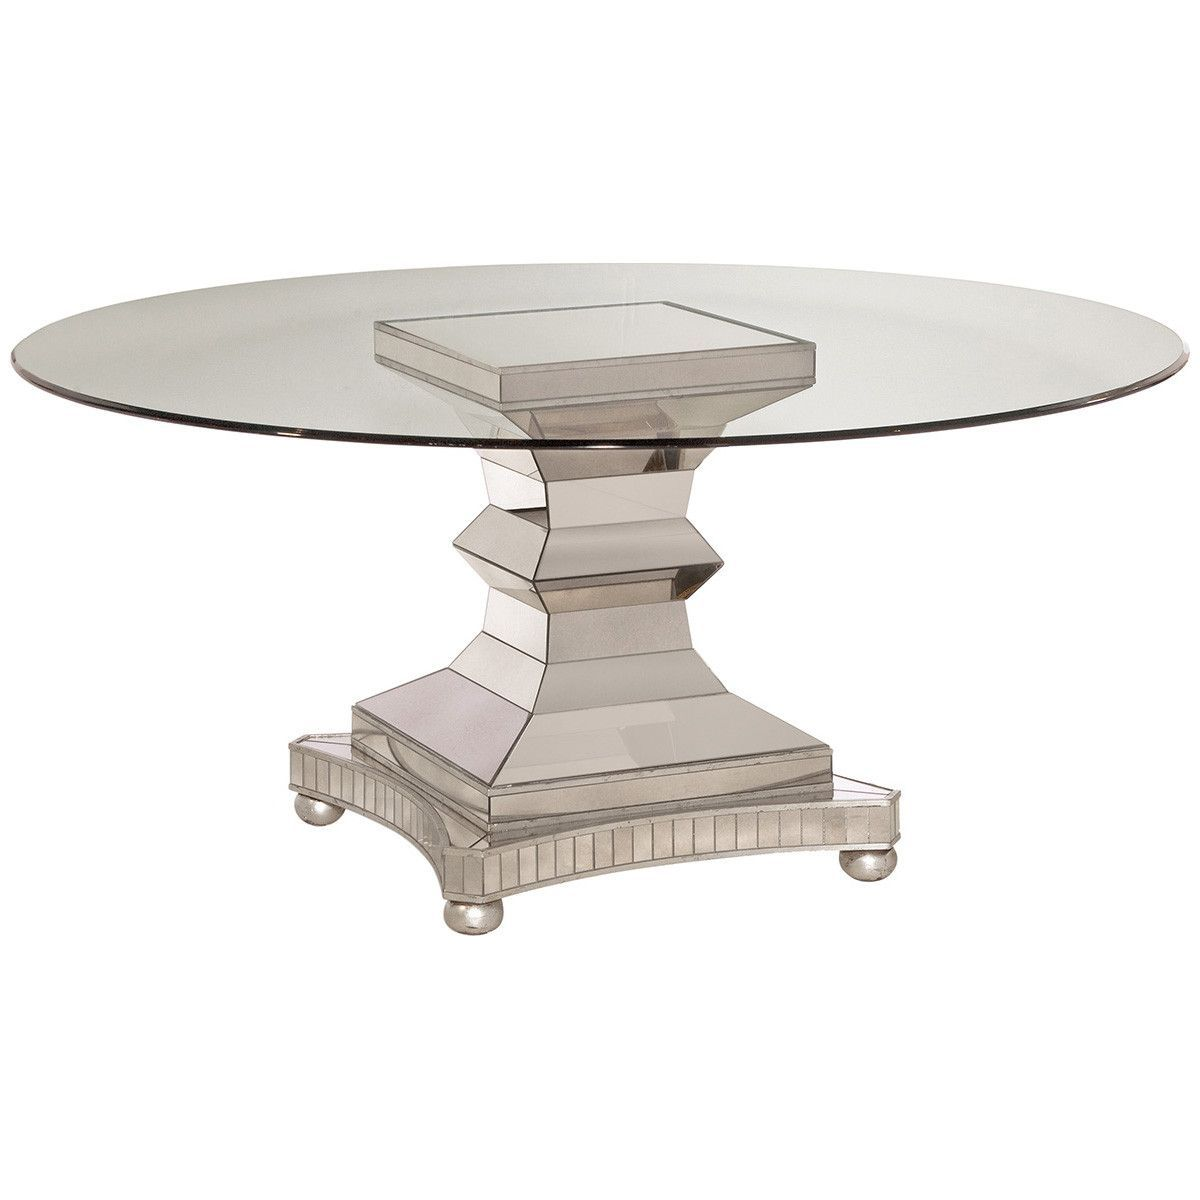 Bassett Mirror Moiselle Dining Table 70 Is 1000 At Houzz